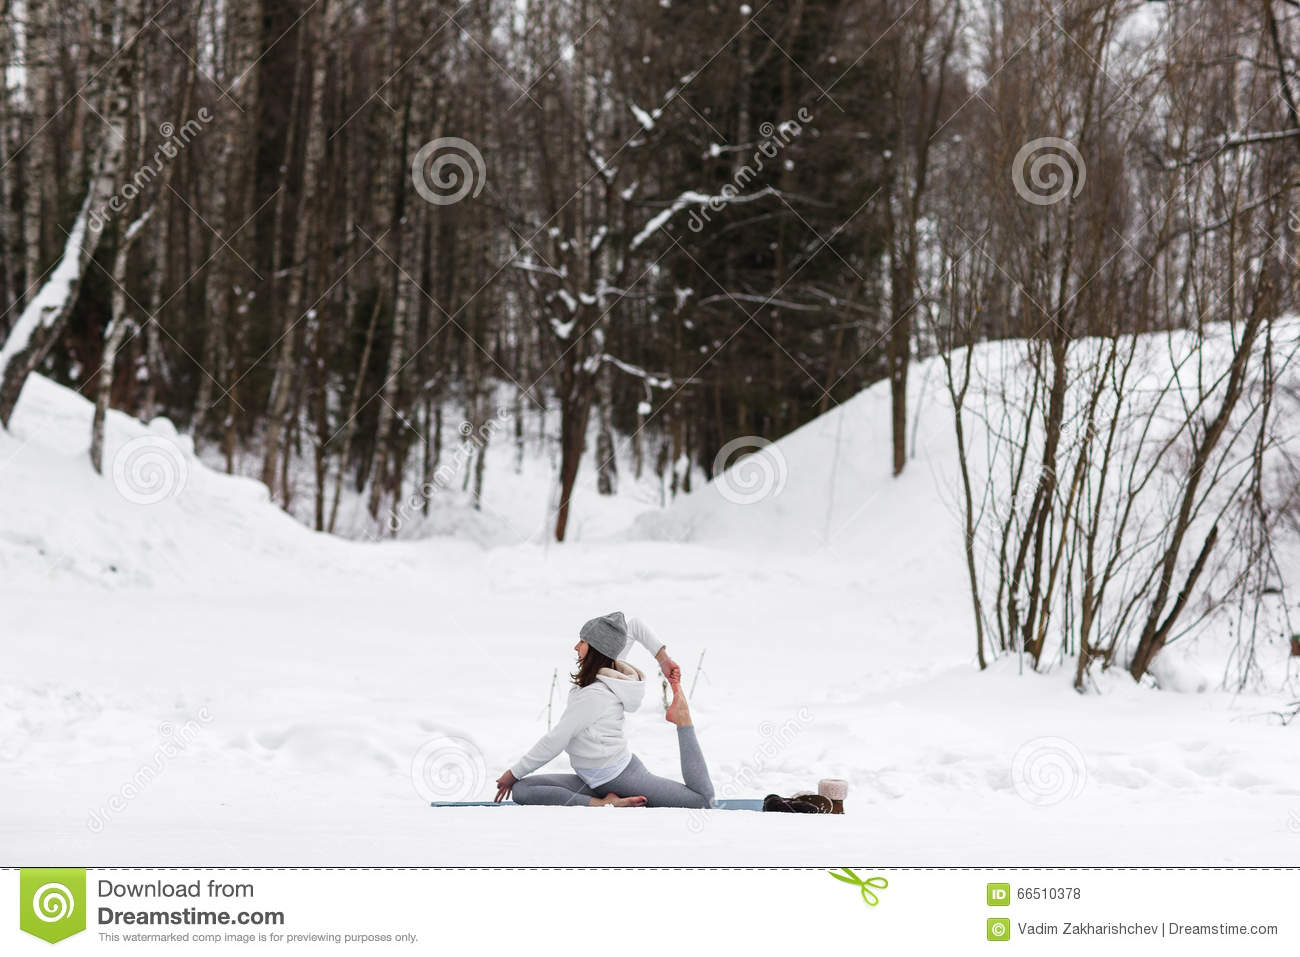 https://thumbs.dreamstime.com/z/winter-yoga-session-beautiful-place-young-athletic-woman-doing-woods-girl-engaged-fitness-park-66510378.jpg